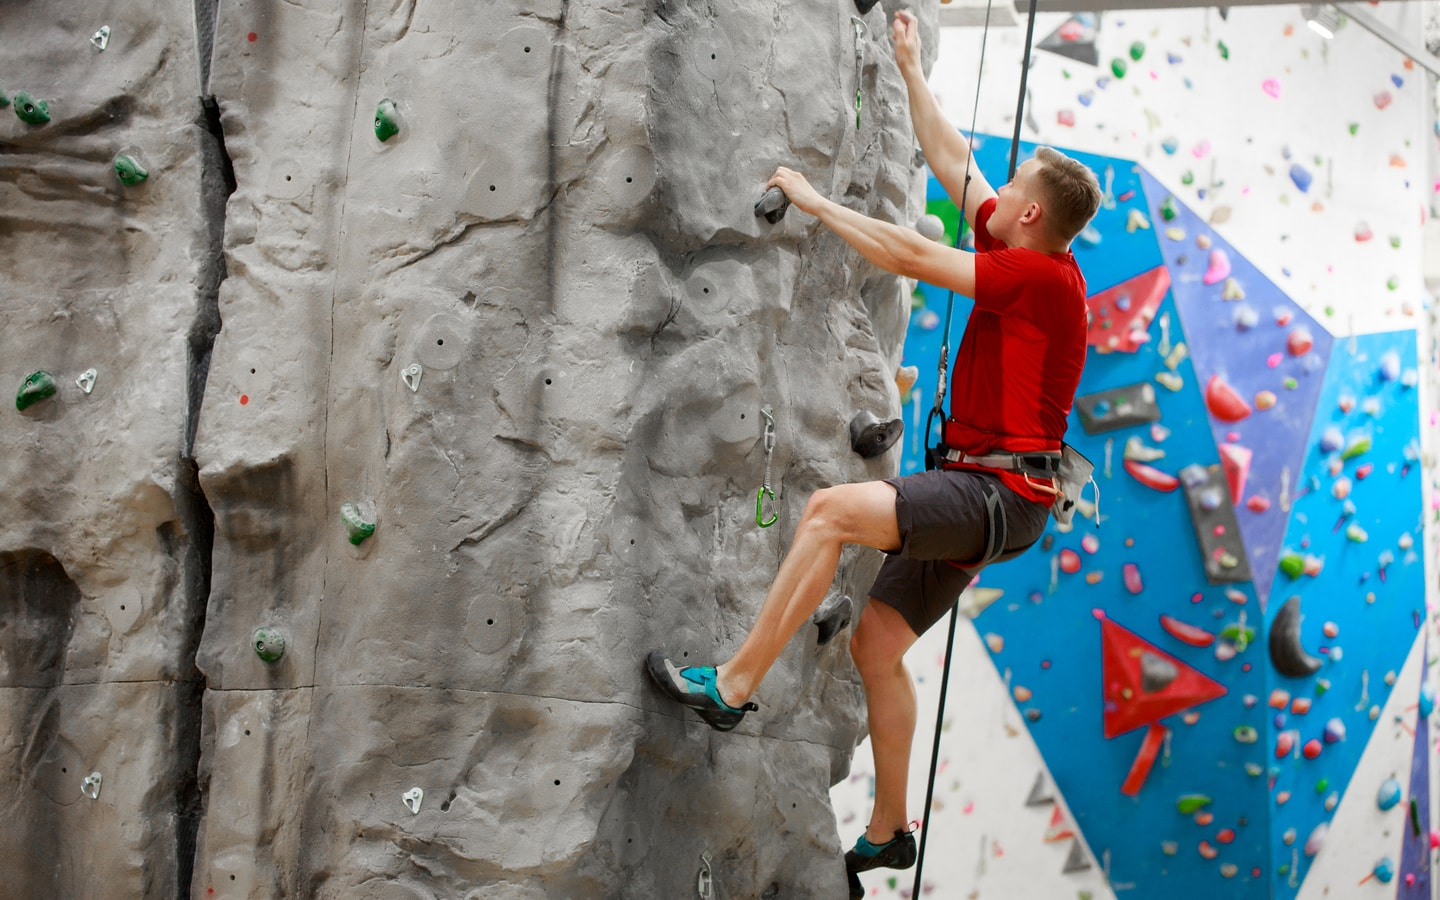 Man in a harness doing rock climbing in an indoor facility